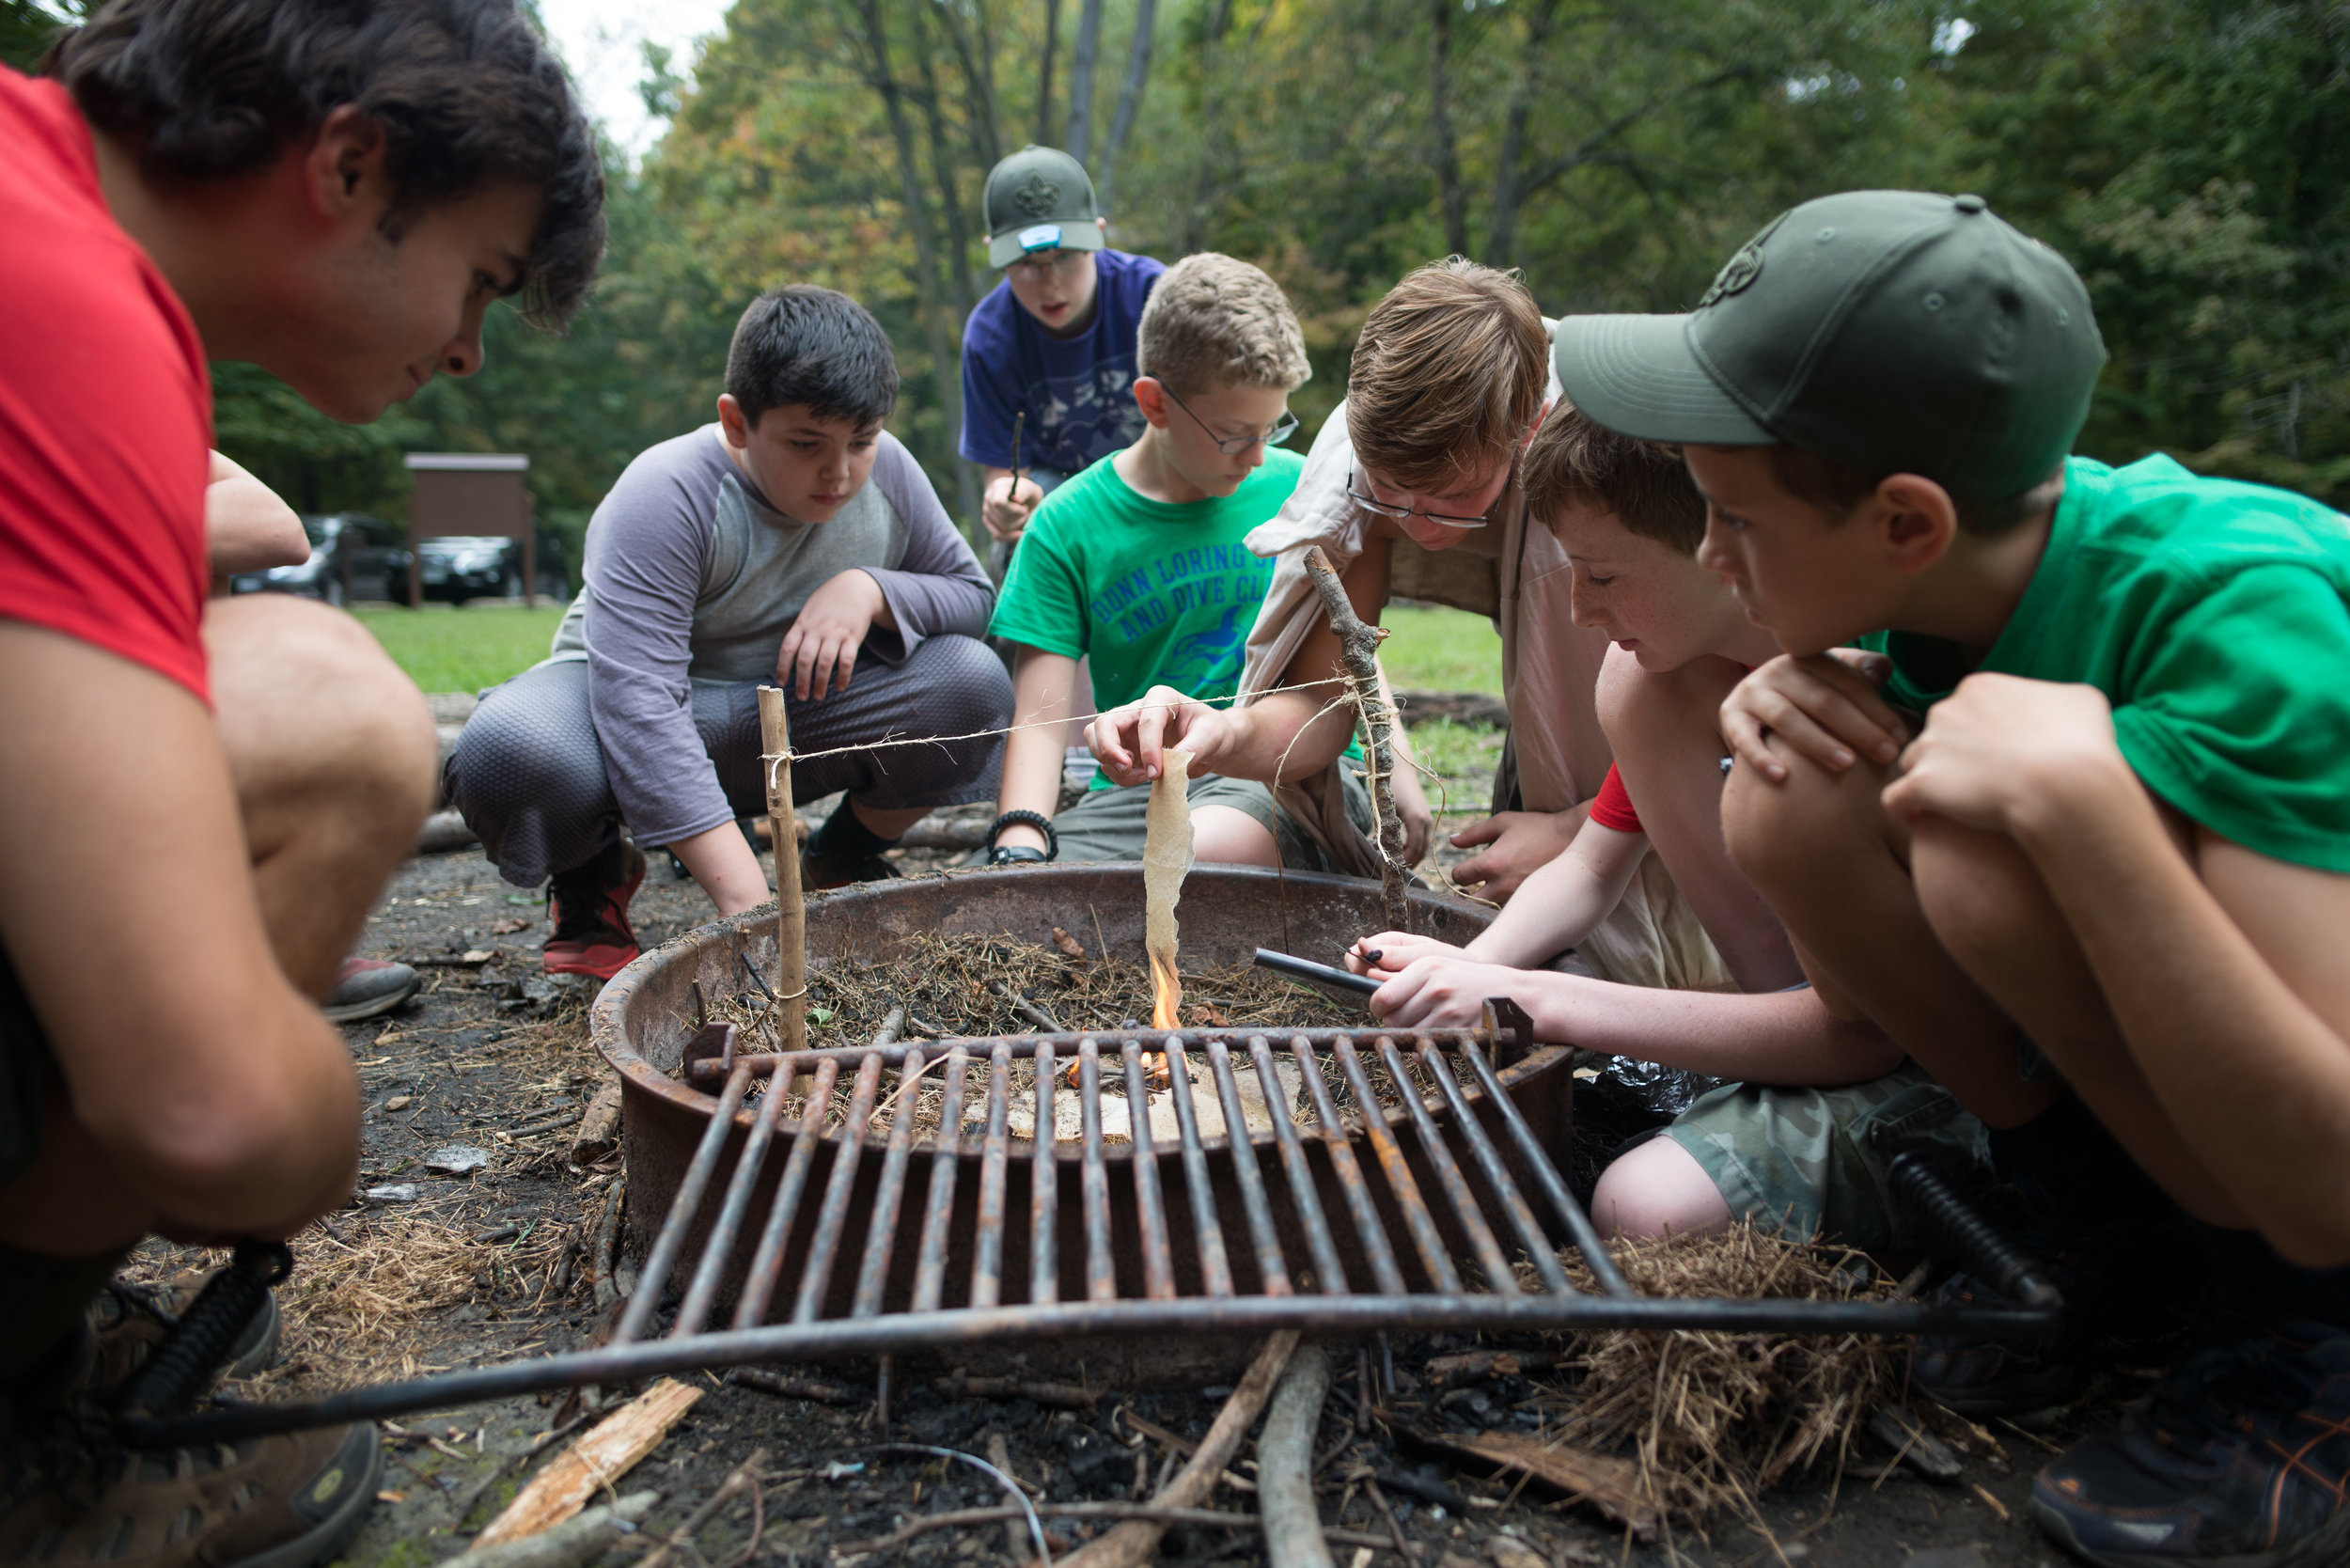 Lead by their patrol leader, Philip, first year scouts in BSA Troop 1978 scouts go head-to-head against older scouts in a fire-building competition.